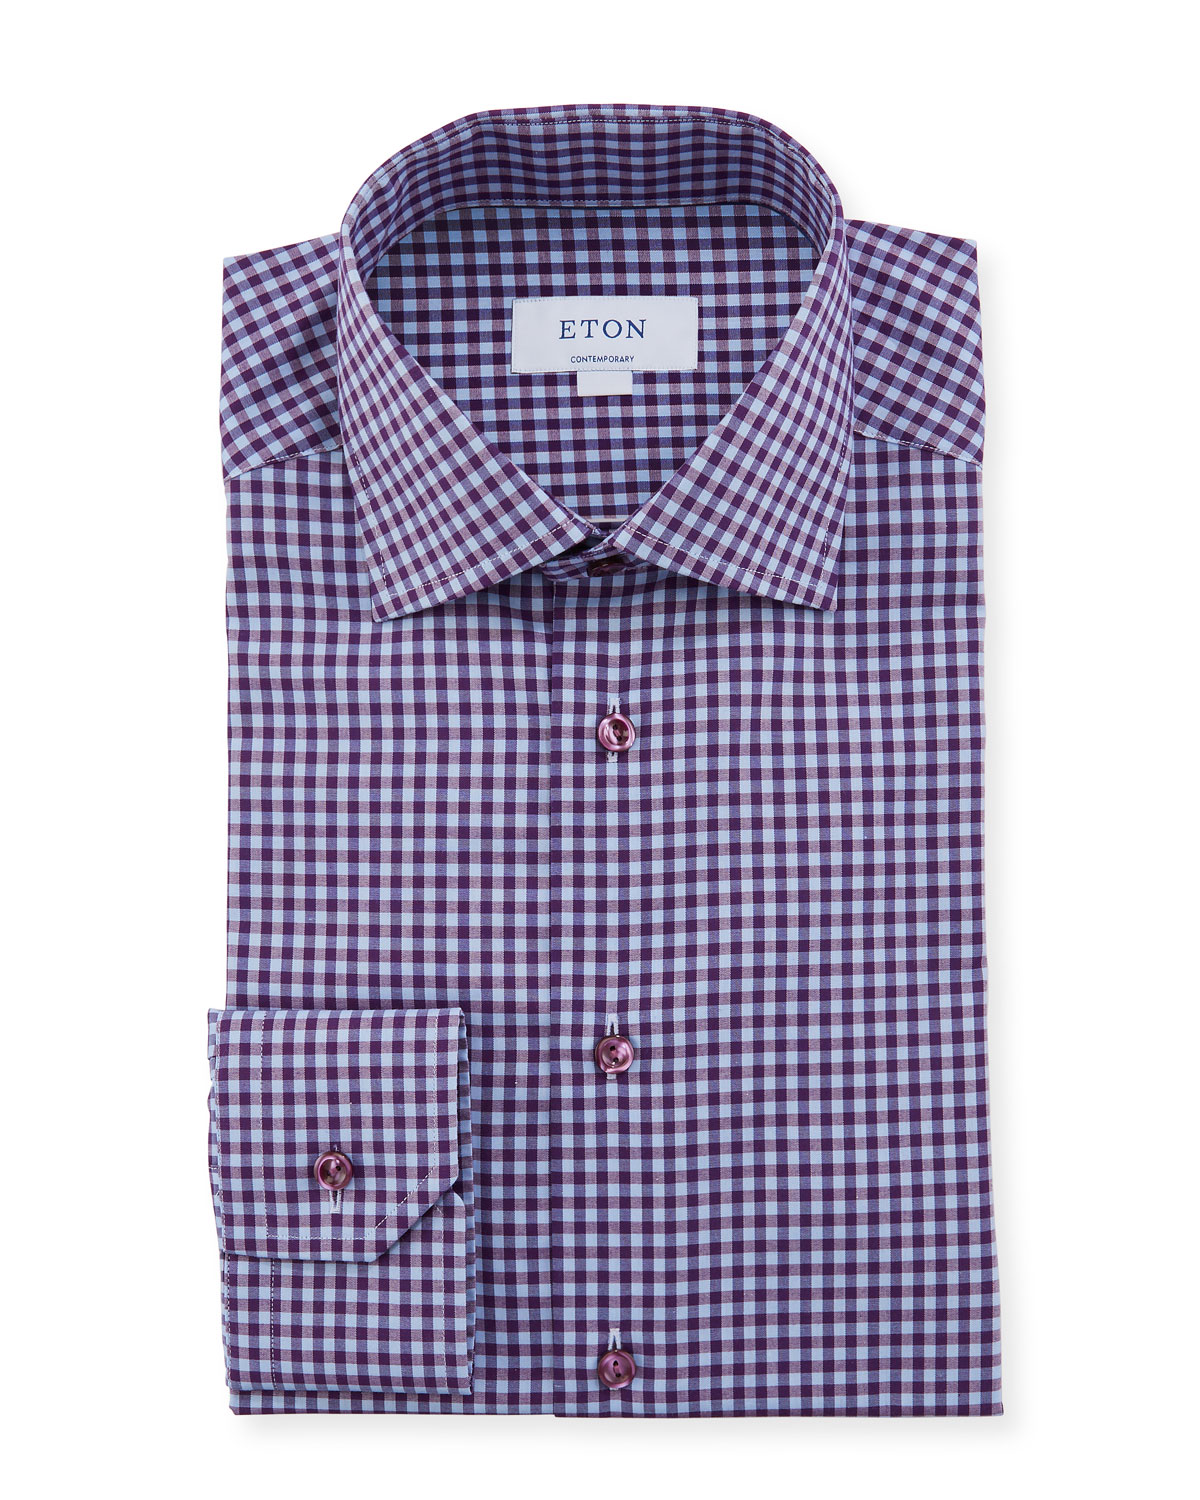 Eton Men's Contemporary Check Dress Shirt With Colored Button